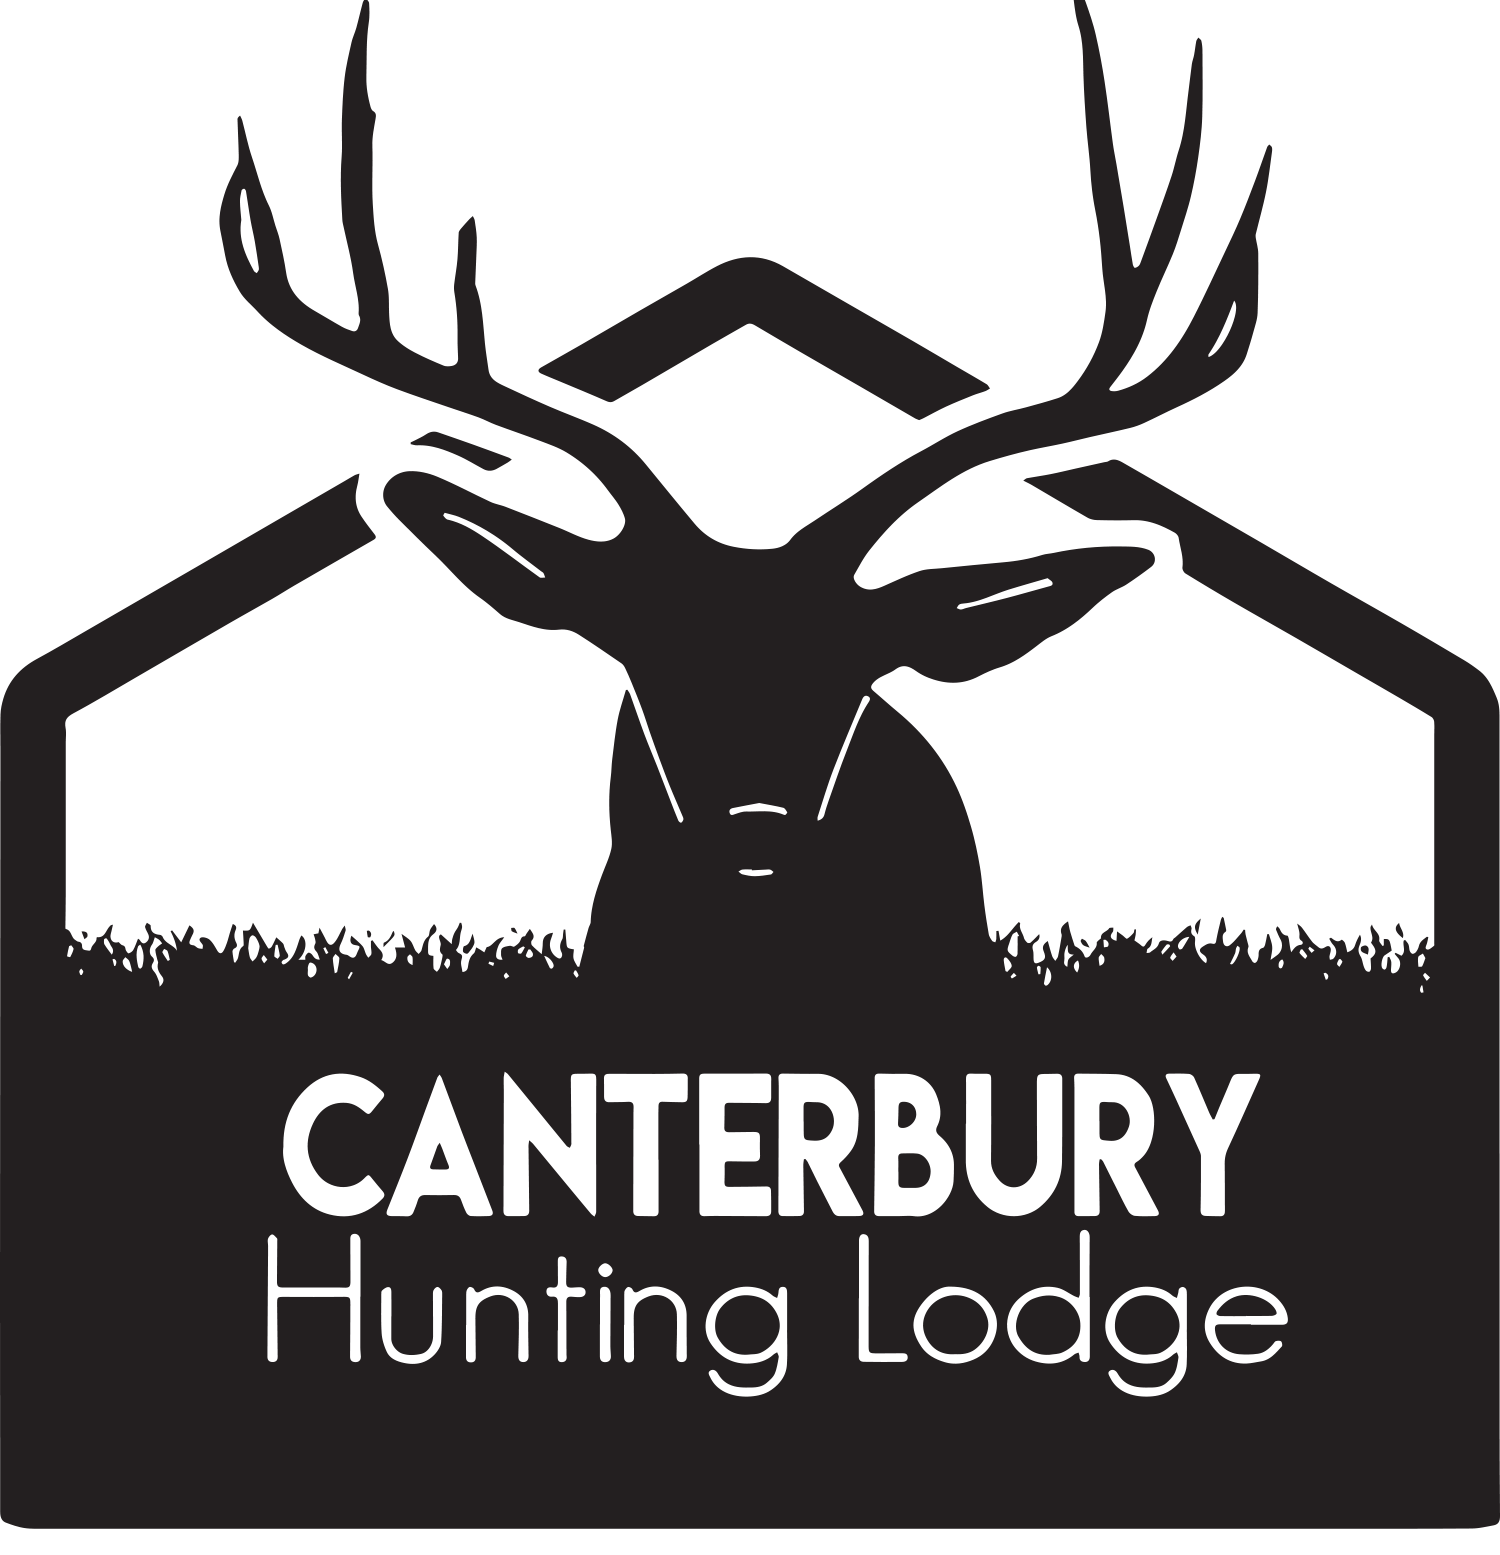 Canterbury Hunting Lodge